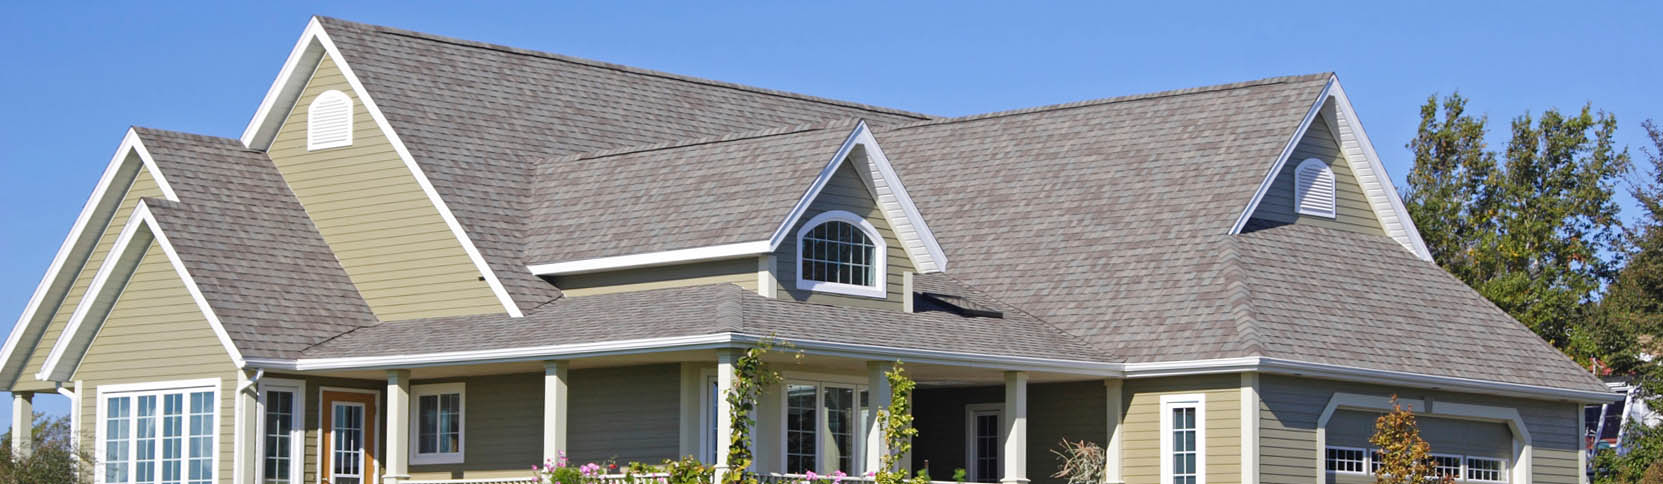 Ed Cyr Roofing Contractor And Home Improvements In